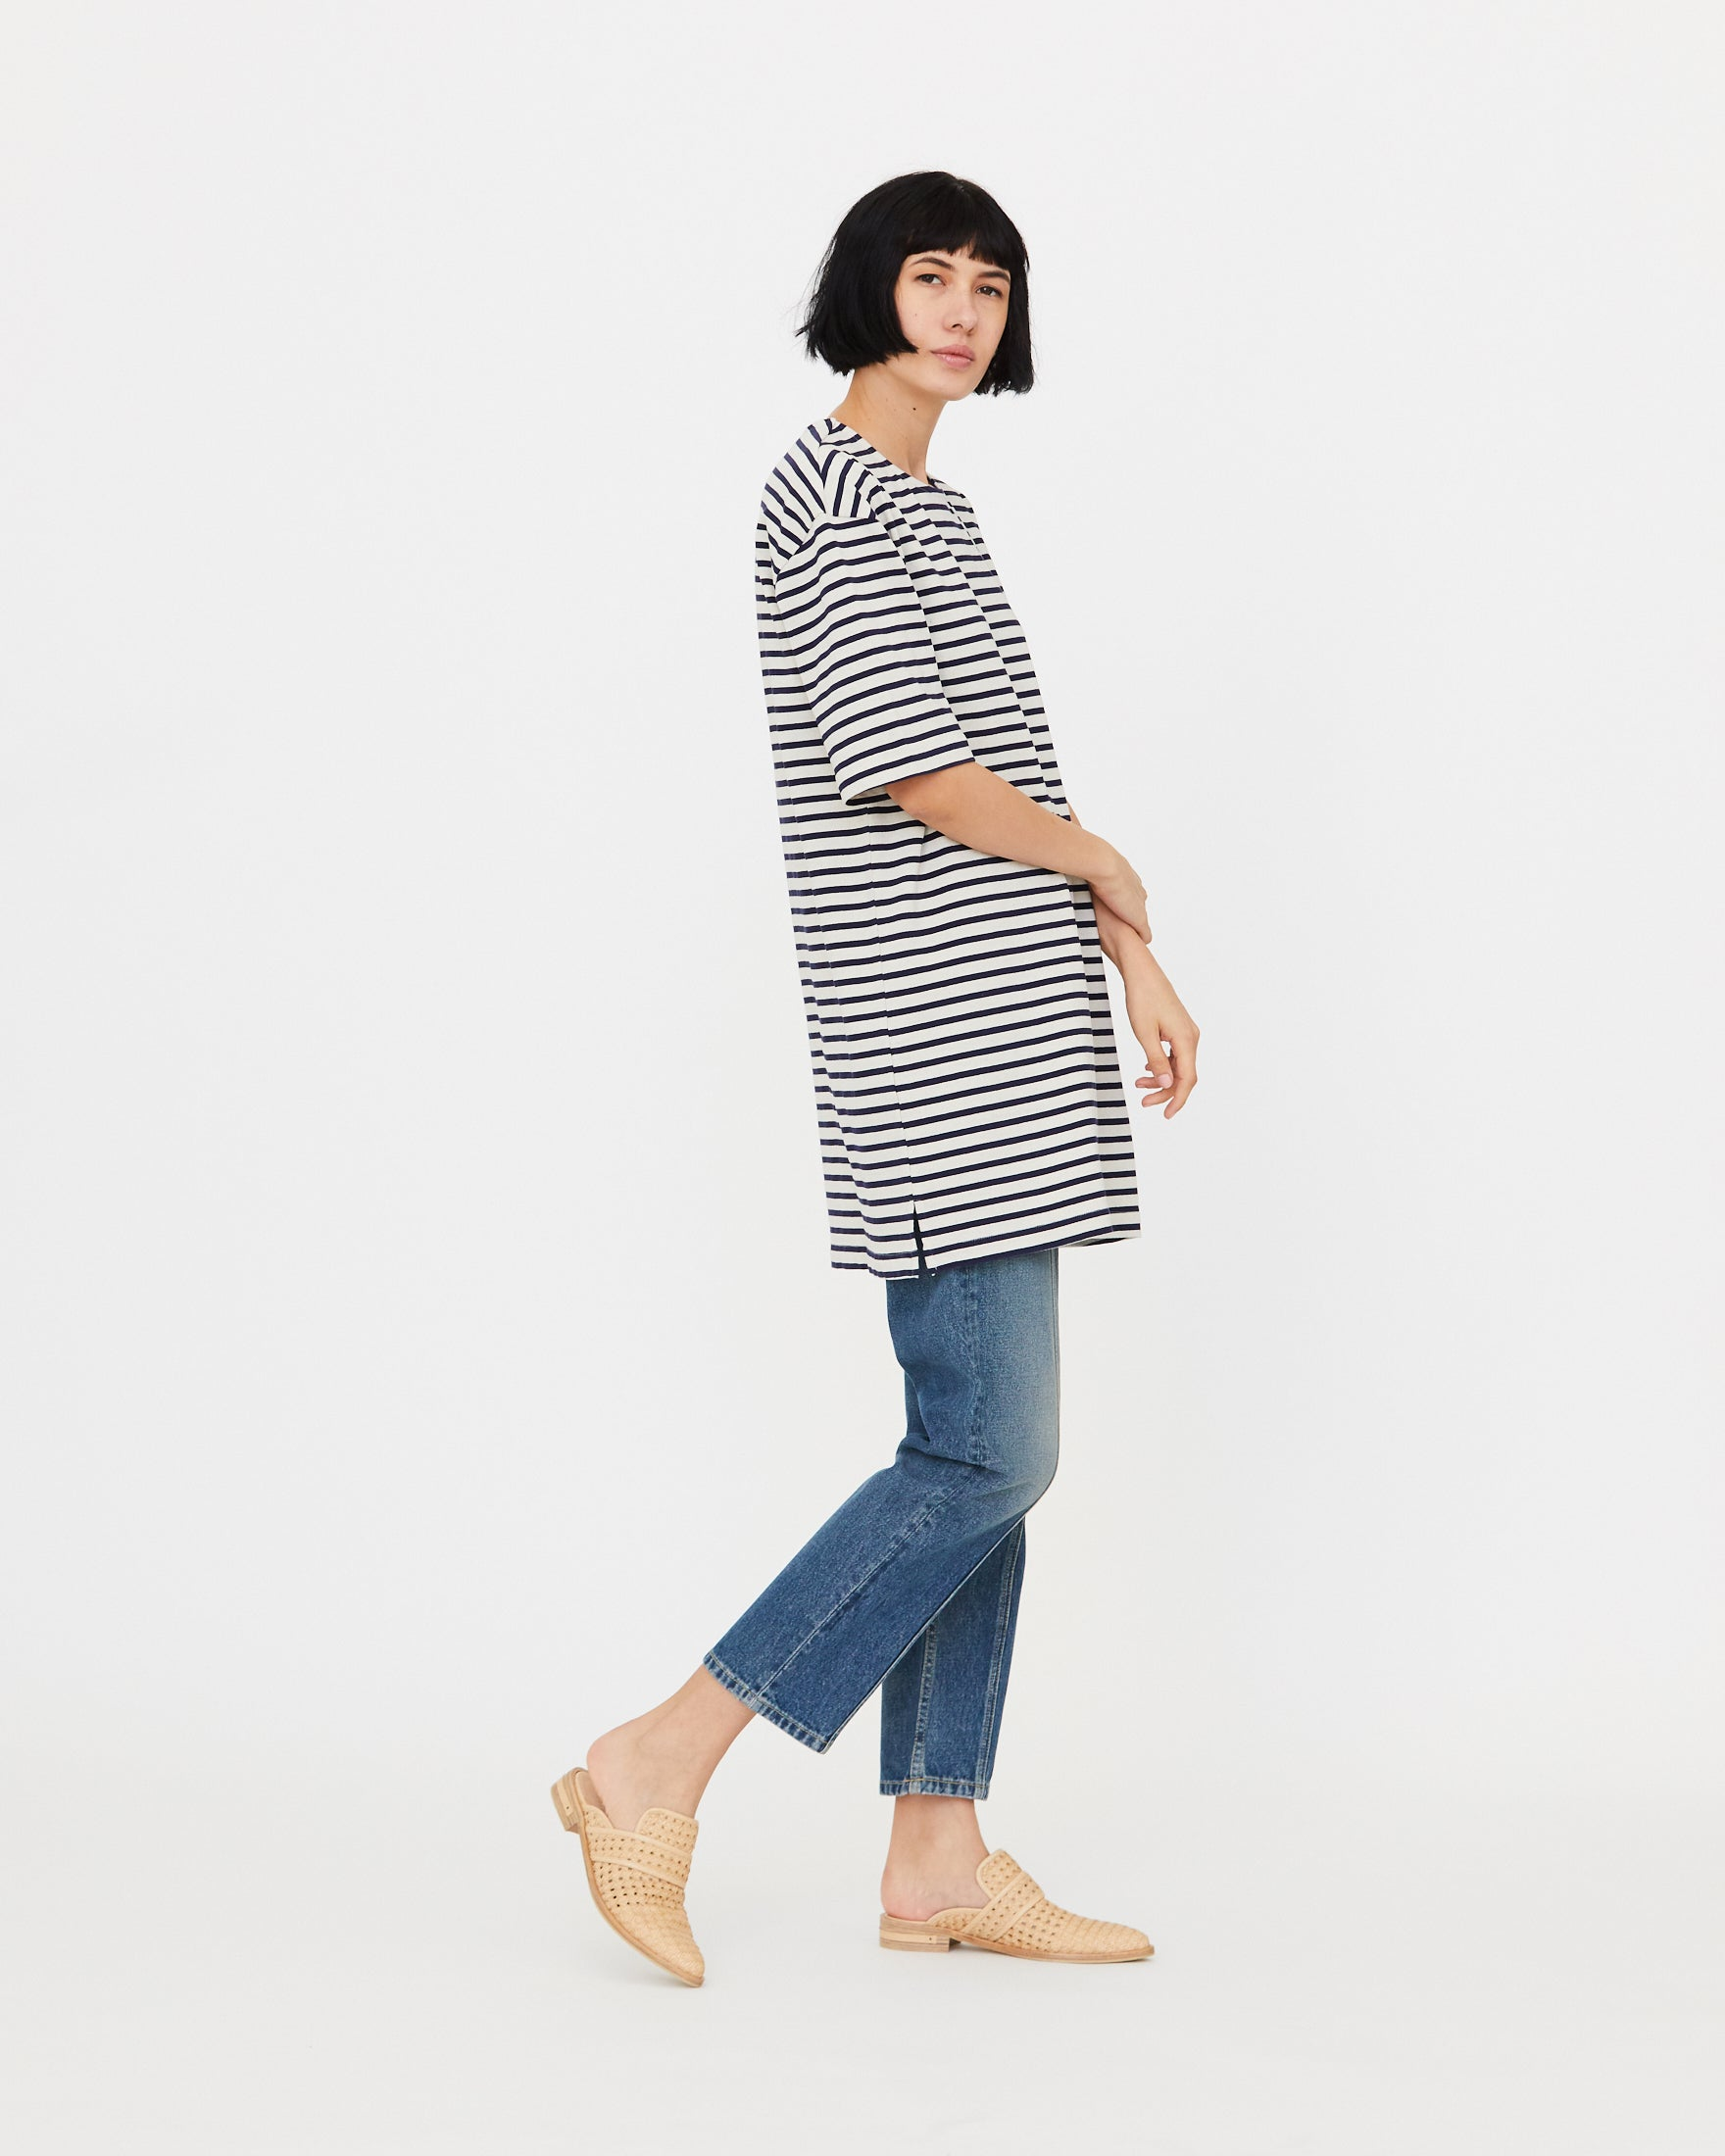 EVELYN SHIRT DRESS - WHITE/MIDNIGHT STRIPE